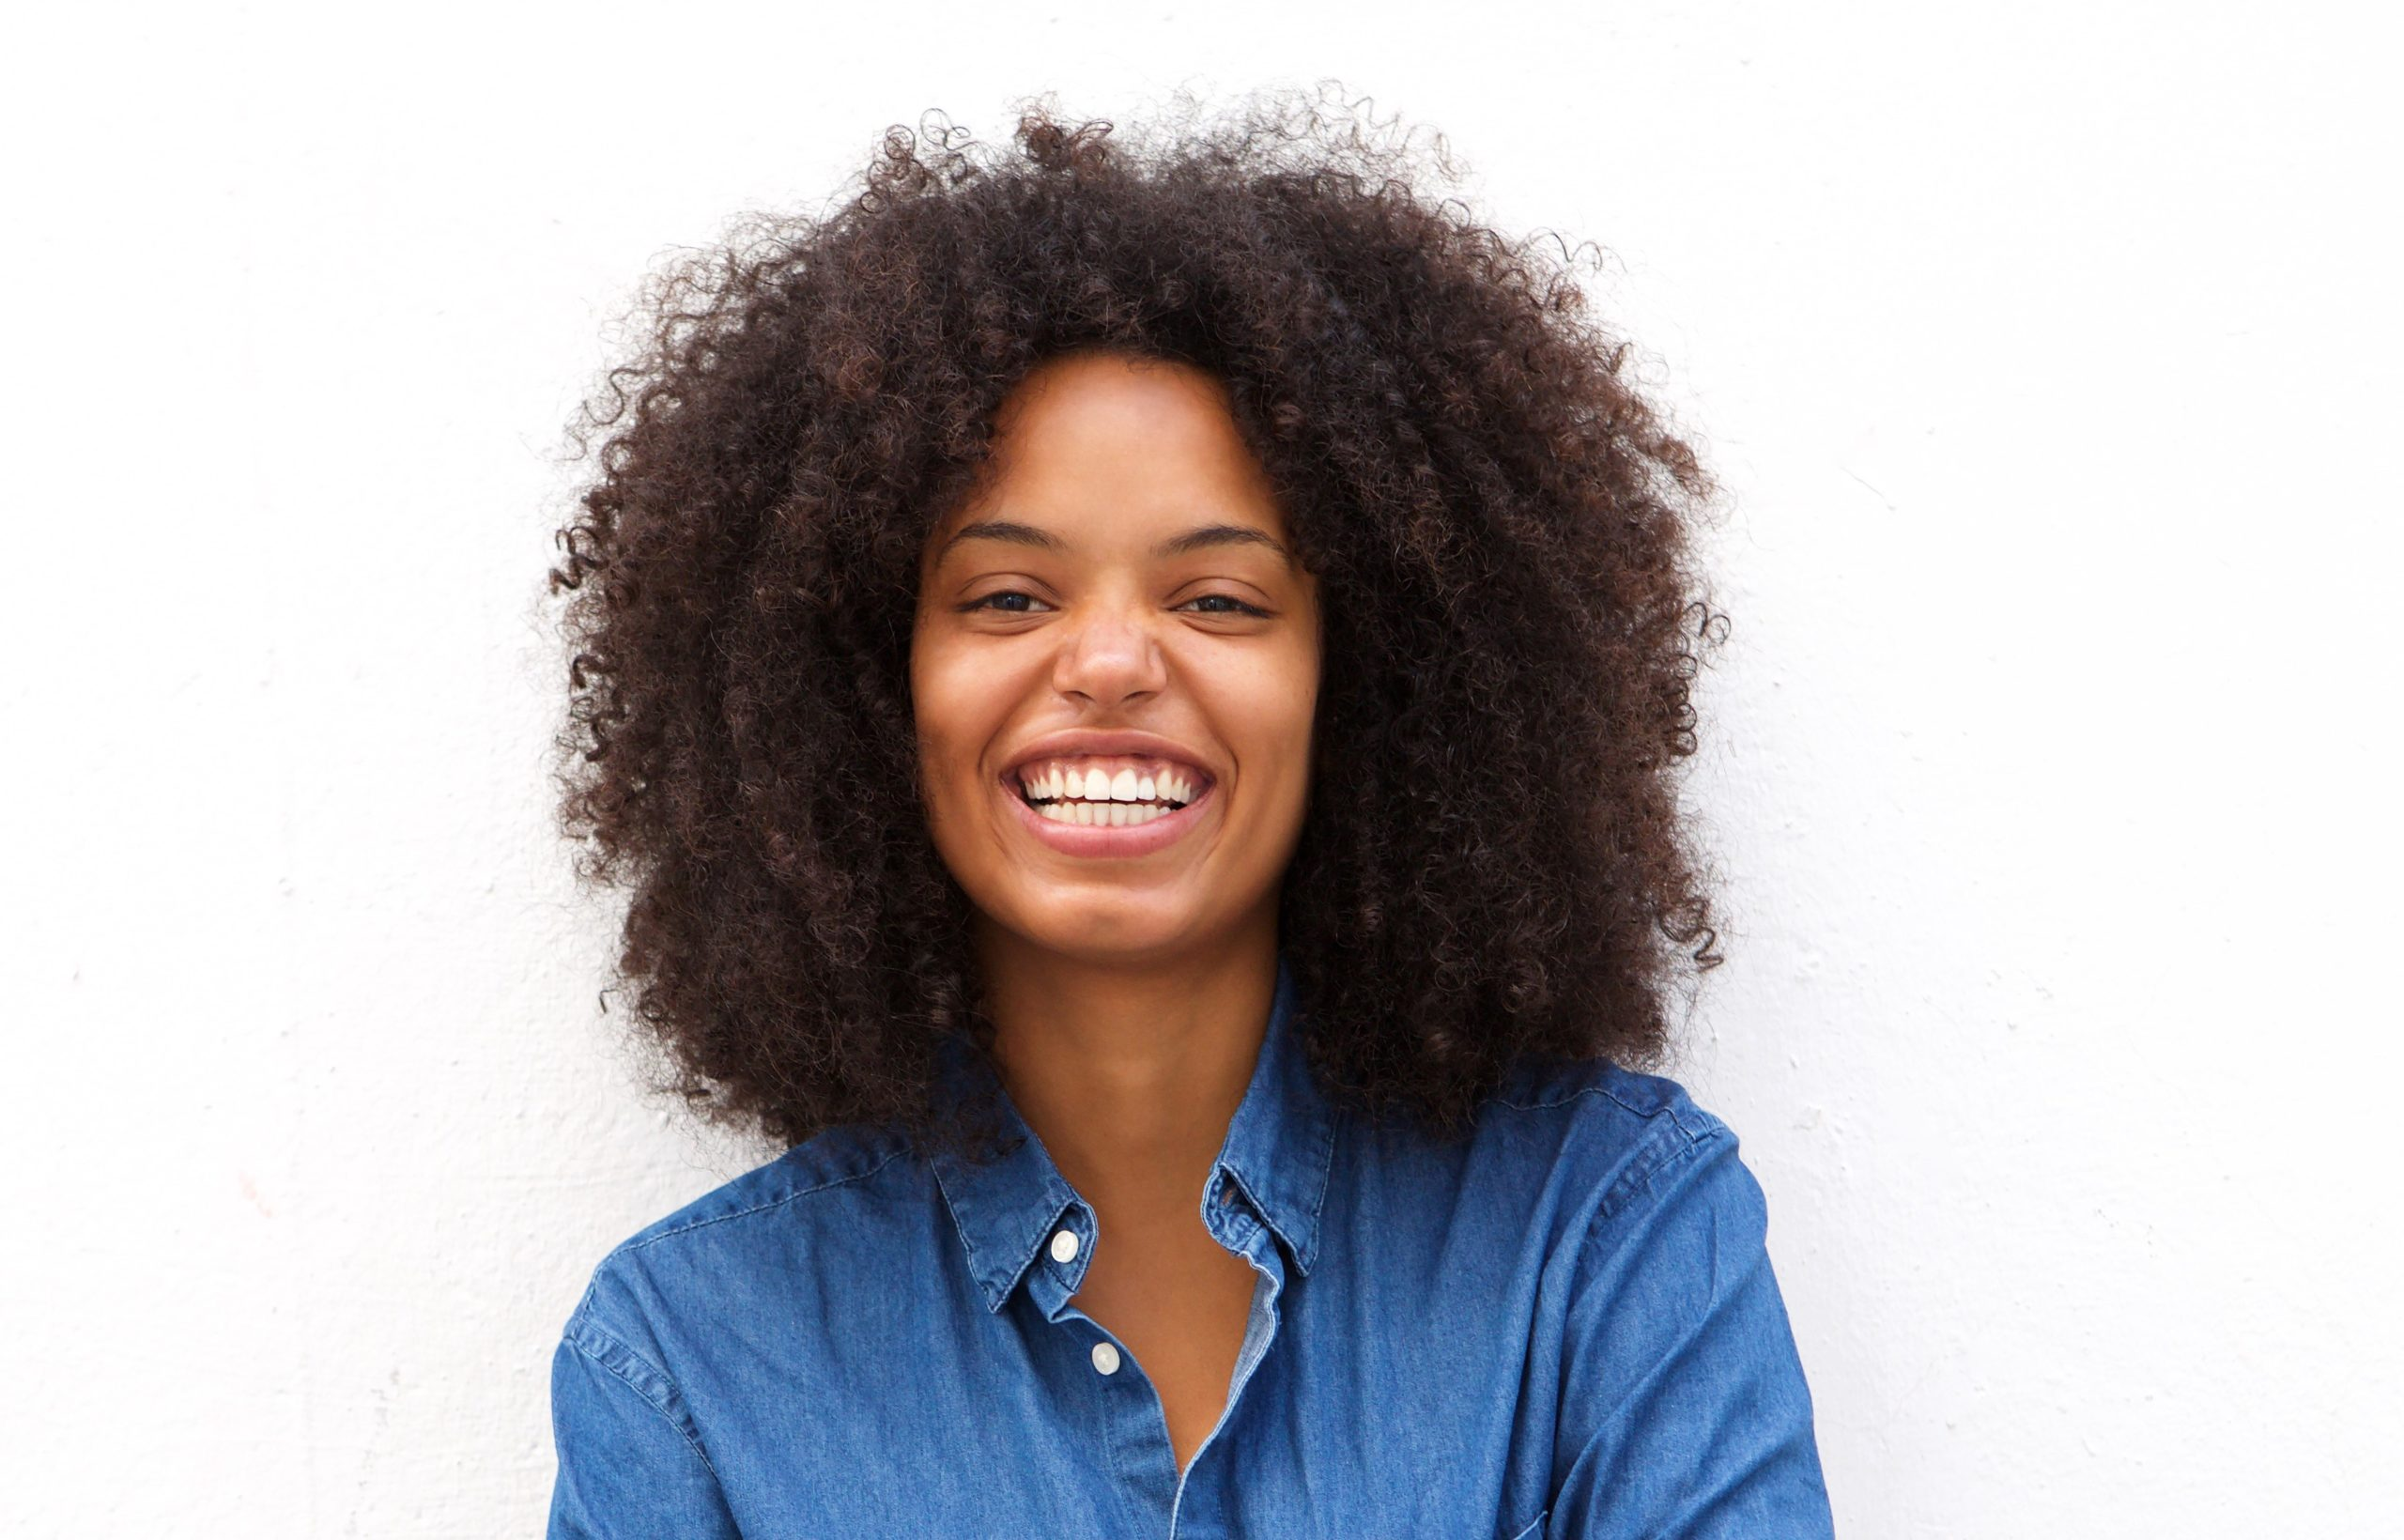 How your smile affects your life